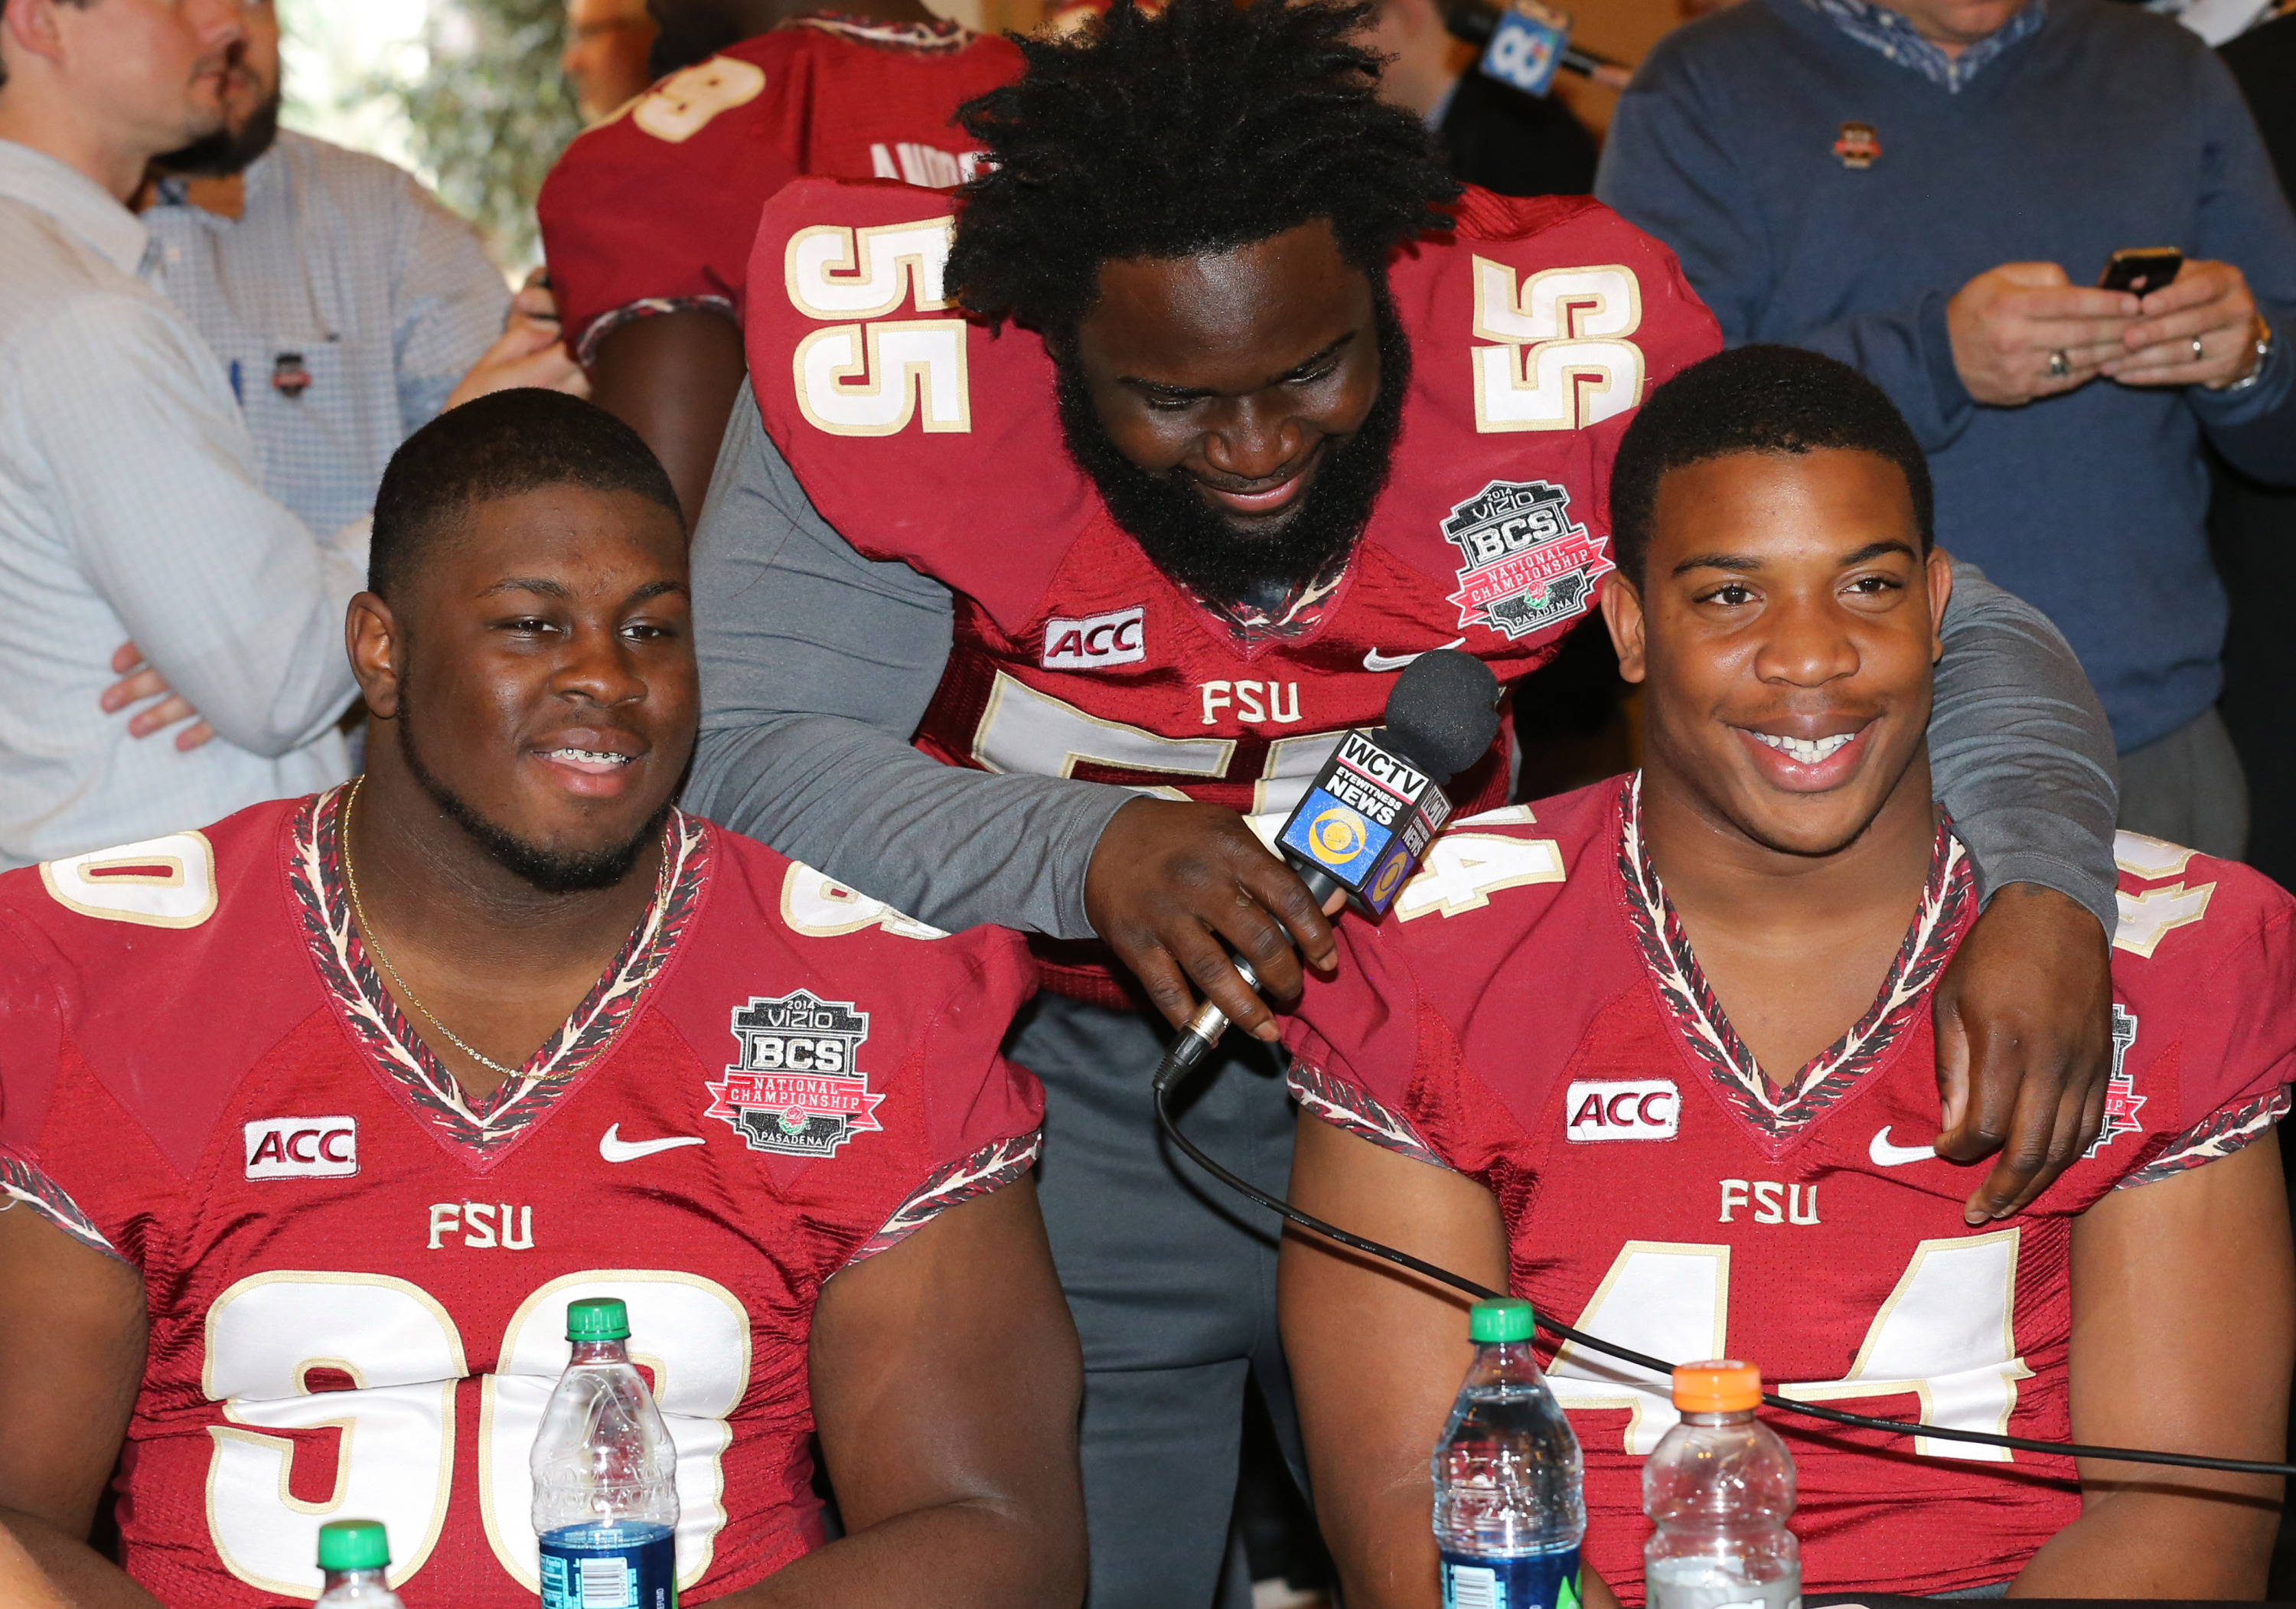 Jan 4, 2014; Newport Beach, CA, USA; Seminoles lineman Ira Denson (55) interviews his teammates defensive tackle Eddie Goldman (90) and defensive end DeMarcus Walker (44) during Media Day at Newport Beach Marriott. Matthew Emmons-USA TODAY Sports